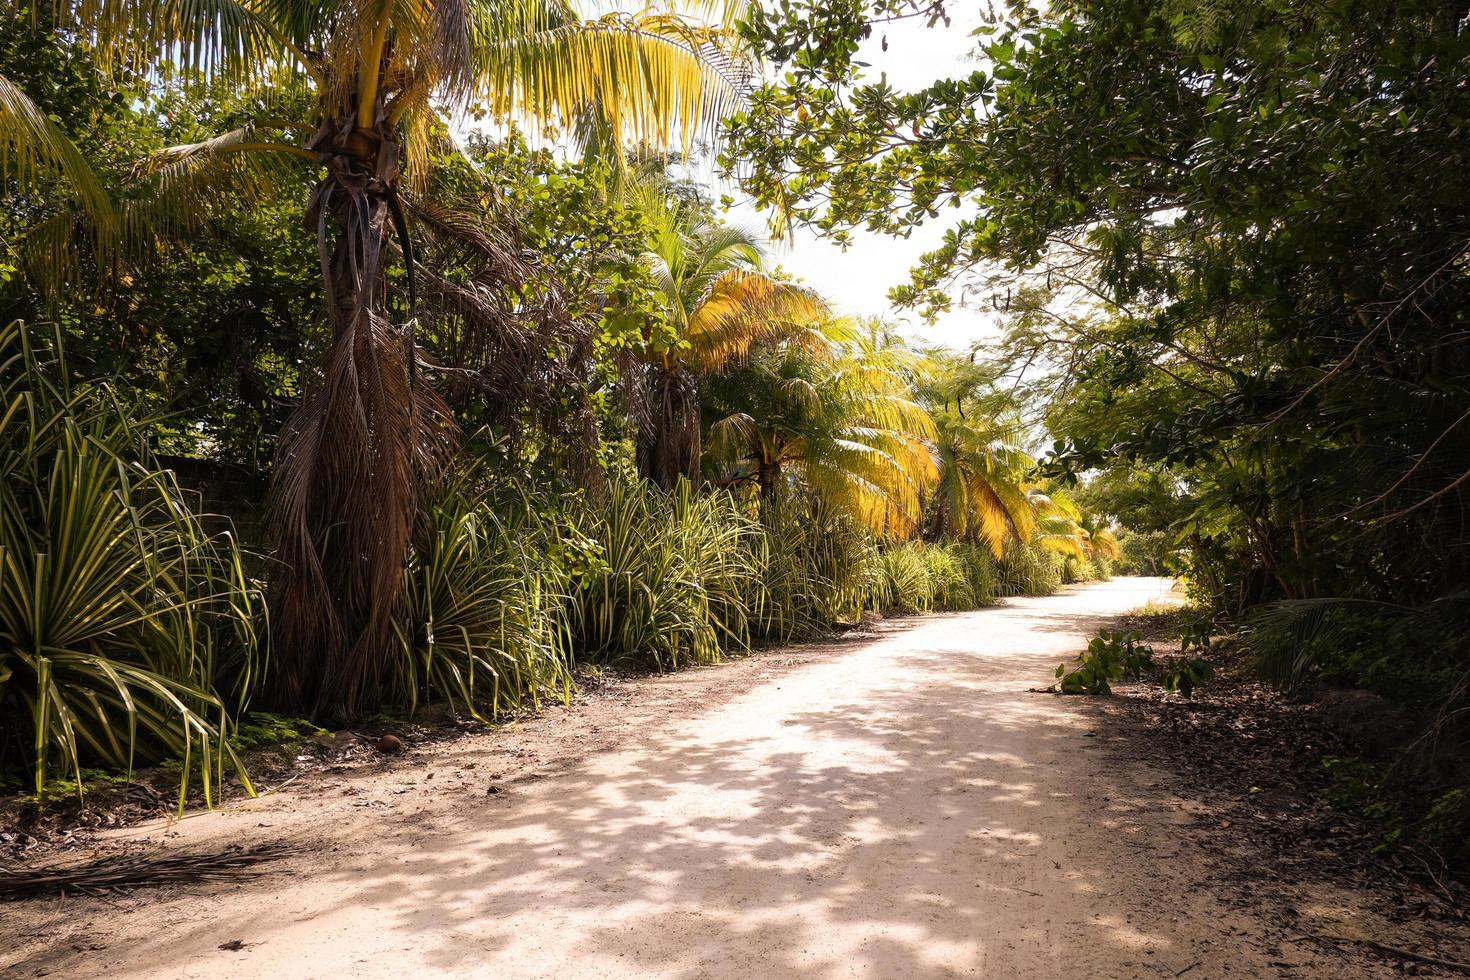 Dirt road through palm trees photo